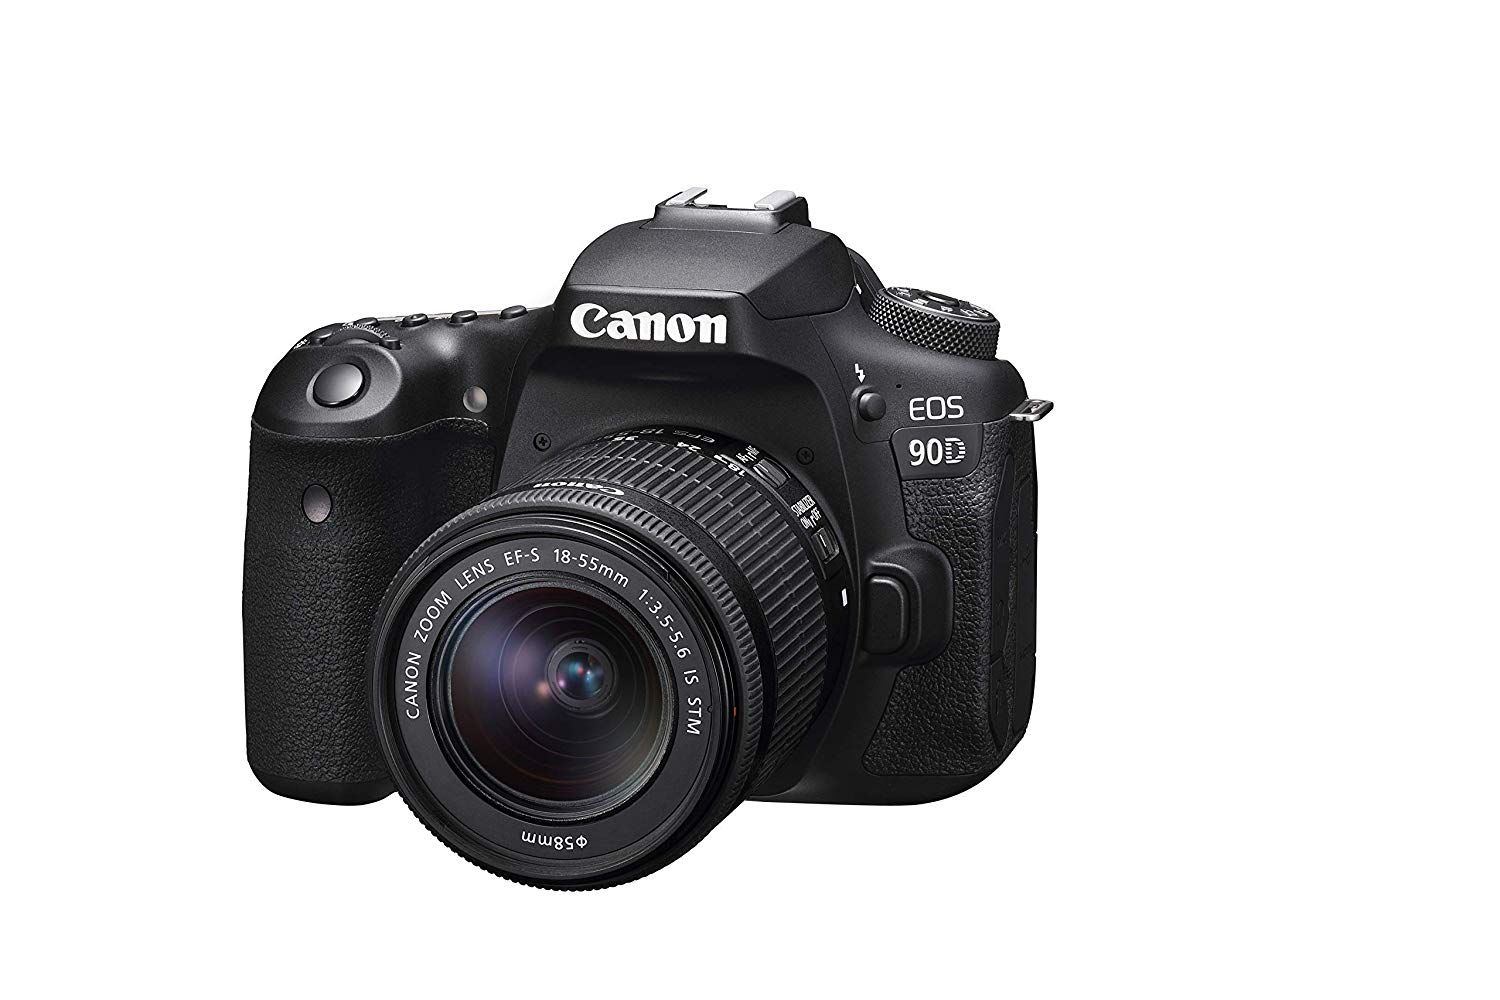 Canon Eos 90d Ef S18 55mm F 4 5 6 Is Stm Eos Canon Eos Canon